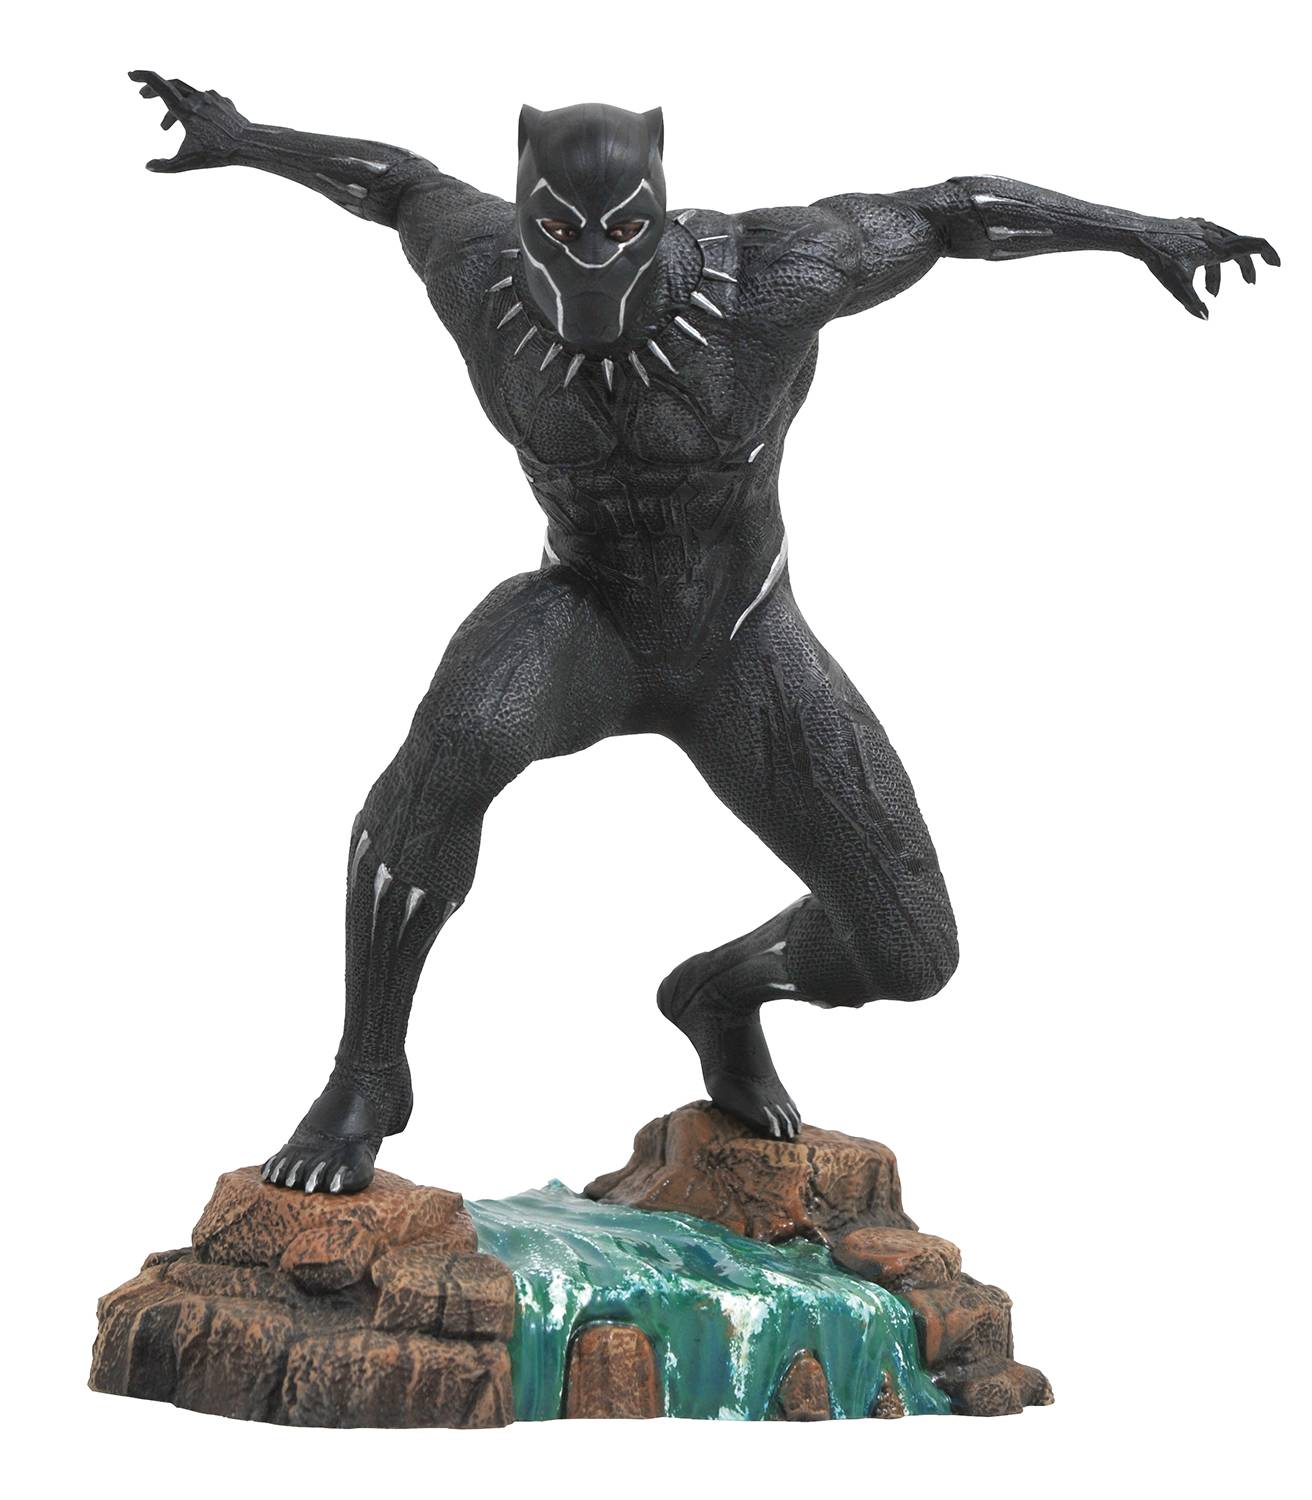 Diamond Marvel Gallery Black Panther Movie Statue